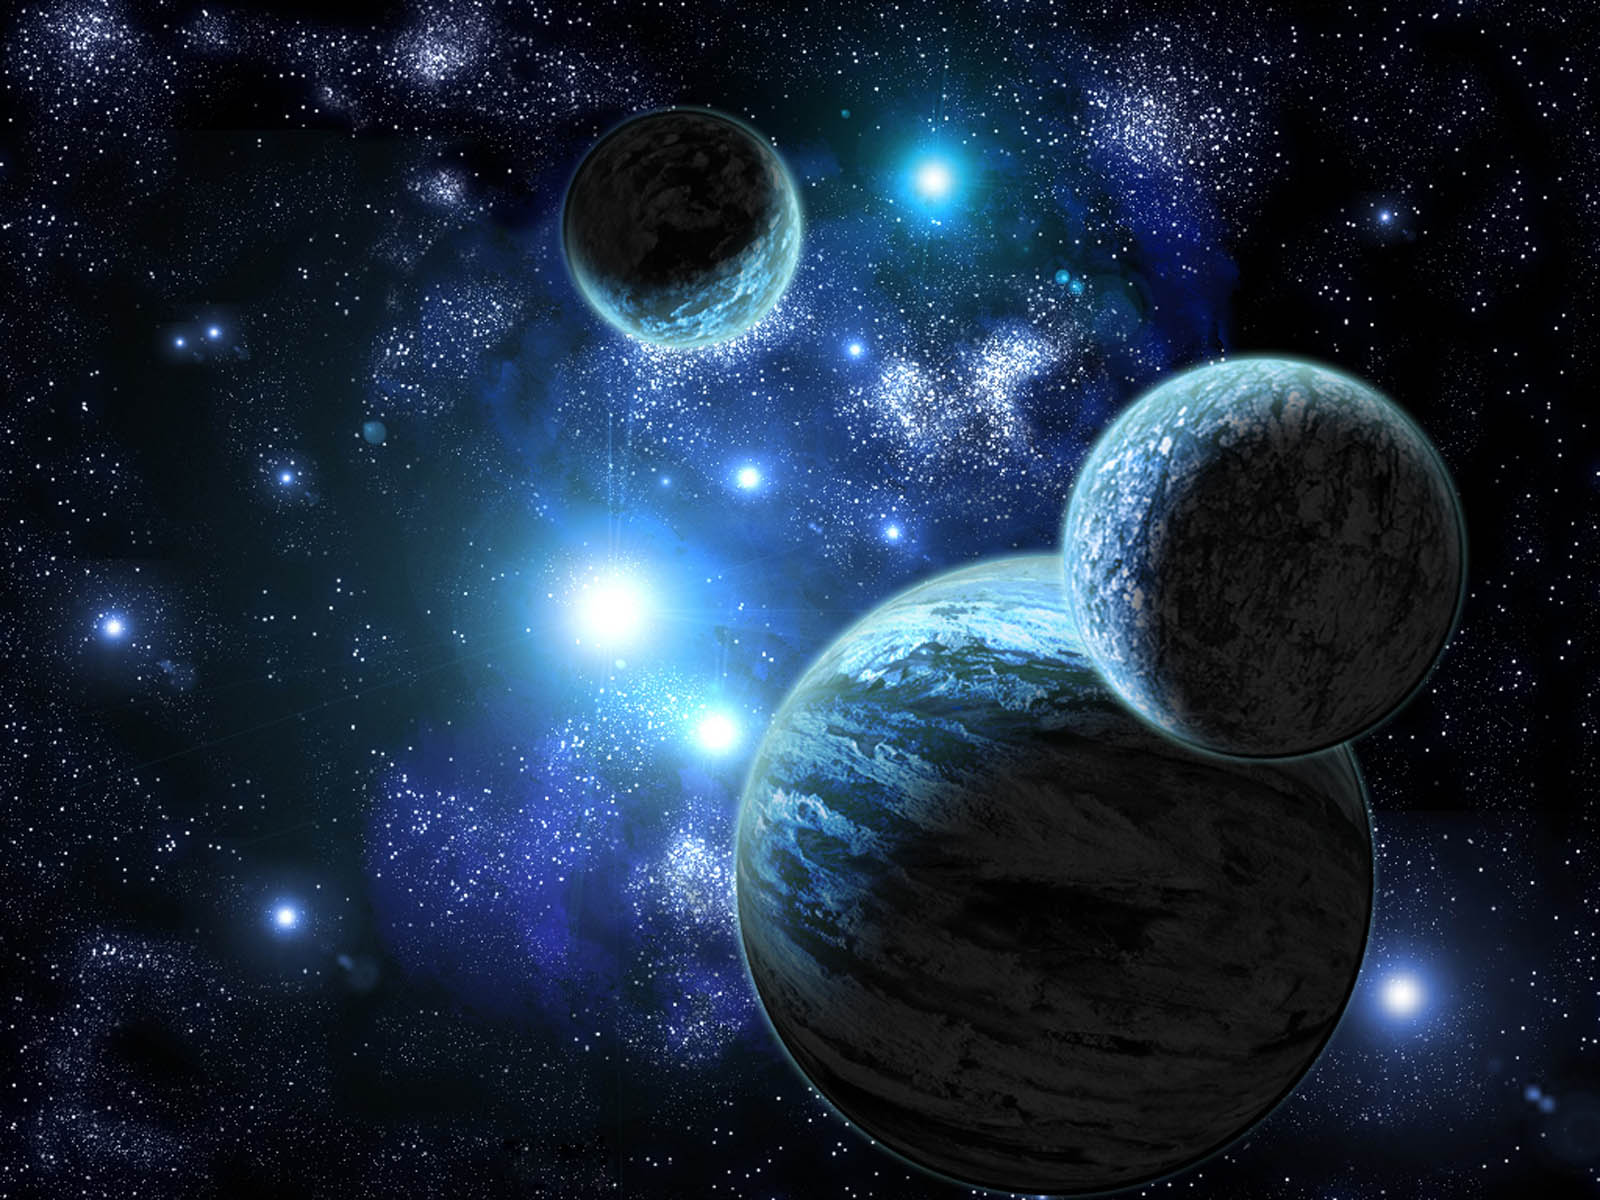 Wallpapers outer space for Outer space planets